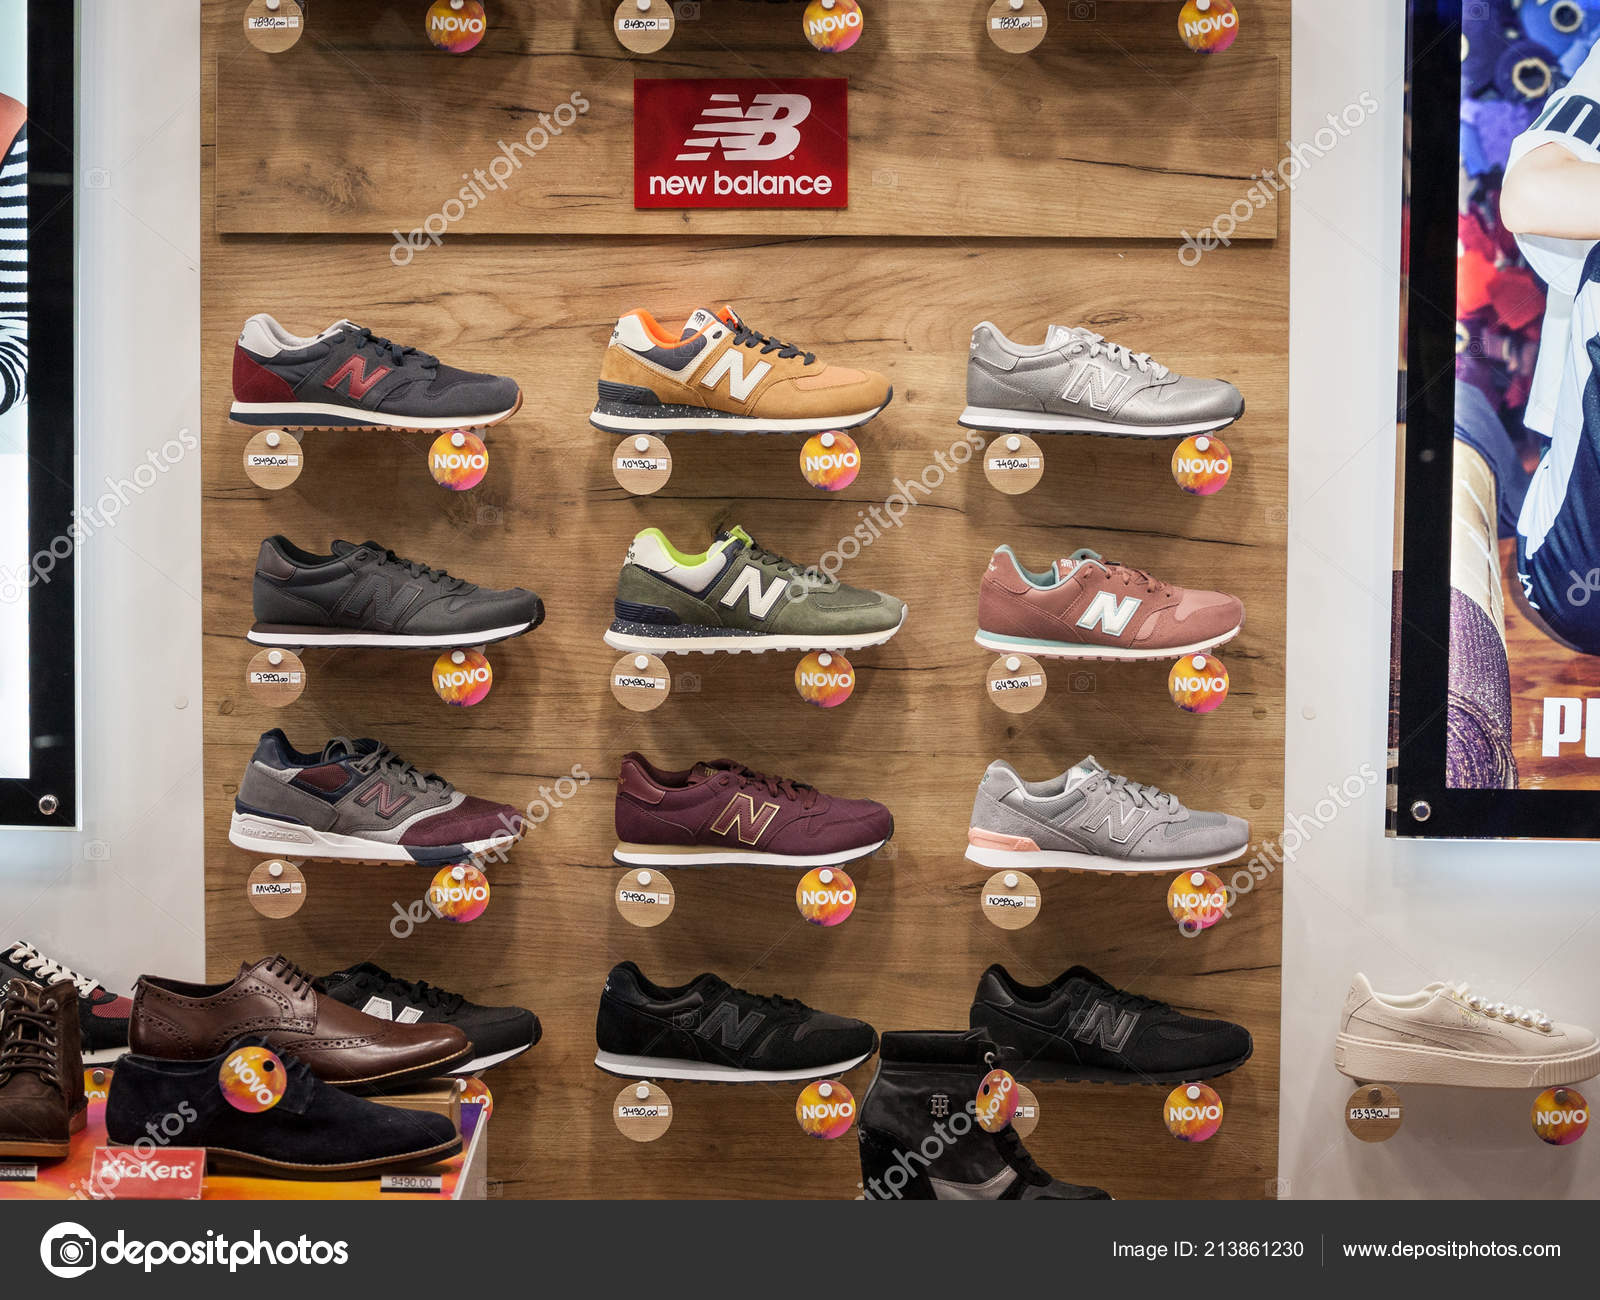 new balance shoes retail stores